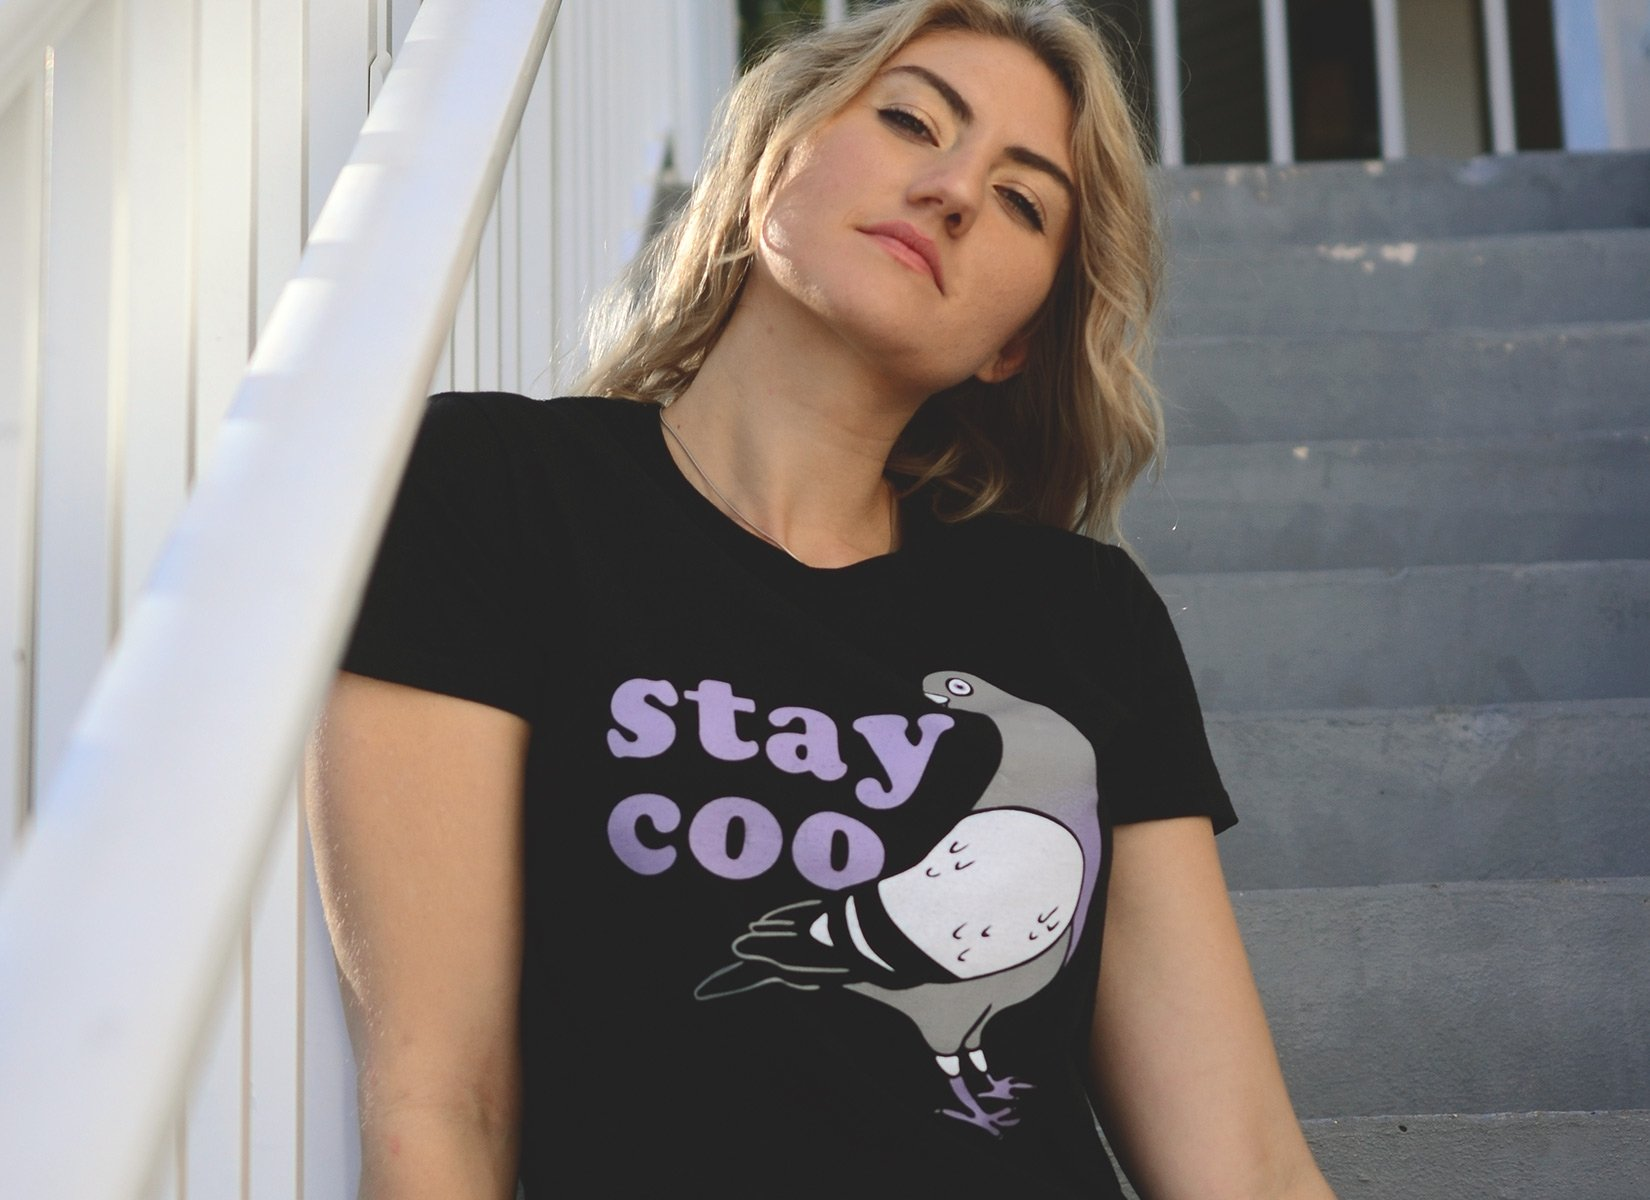 Stay Coo on Womens T-Shirt